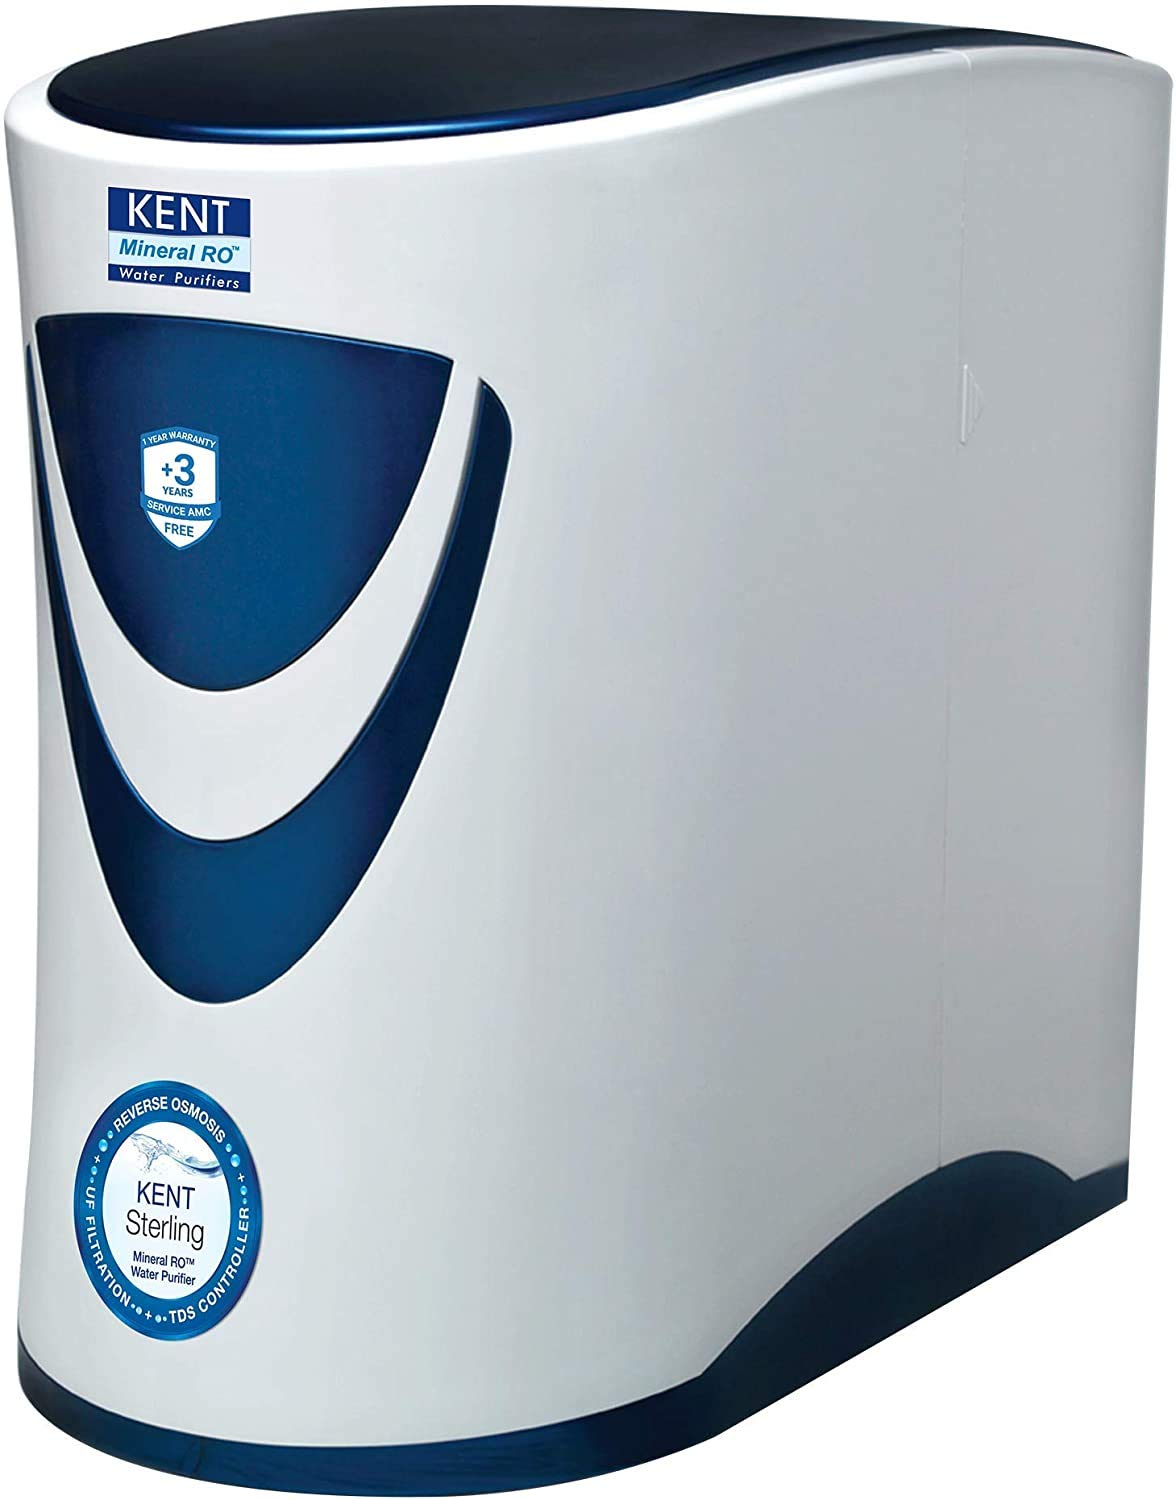 Kent Sterling 6-Litres Under the counter RO+UF+TDS Controller (White and...